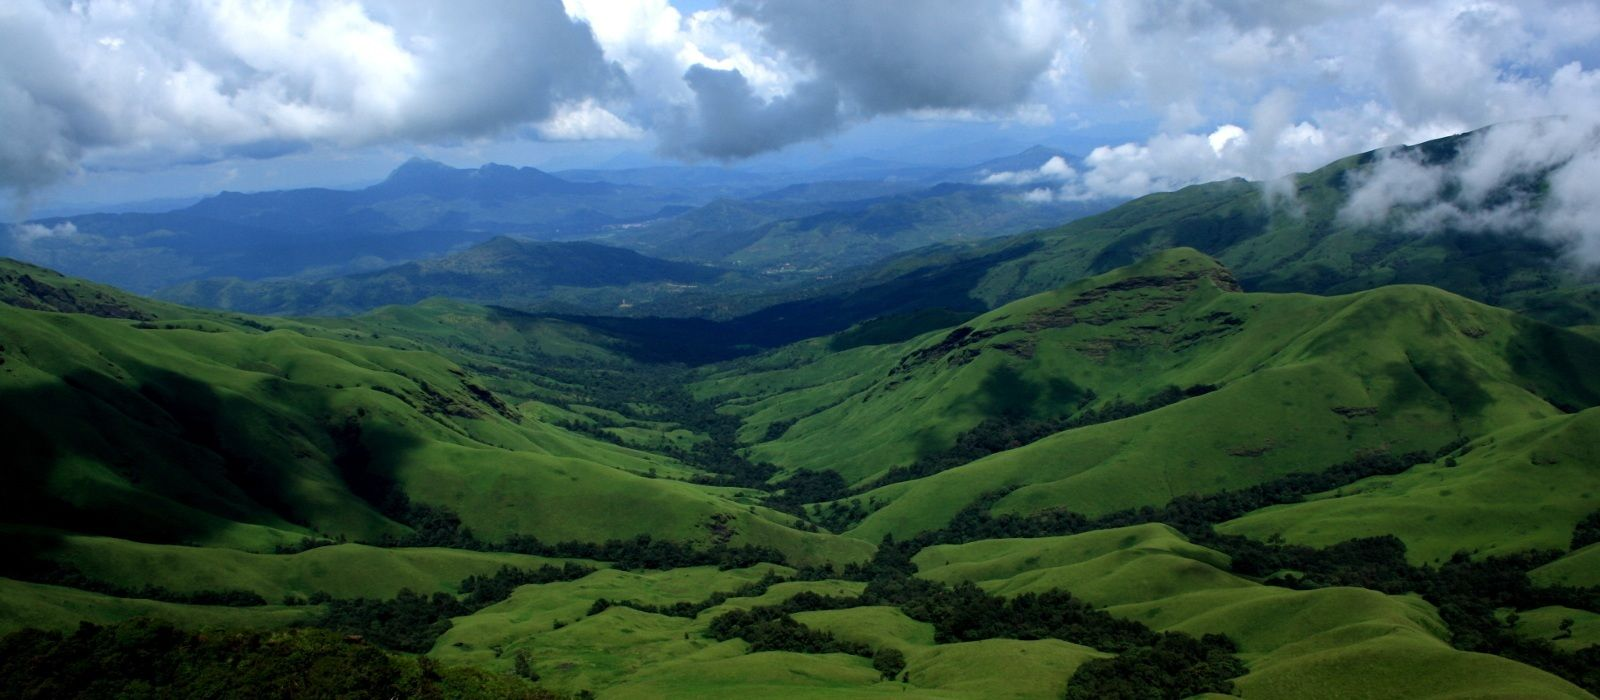 Destination Chikmagalur South India